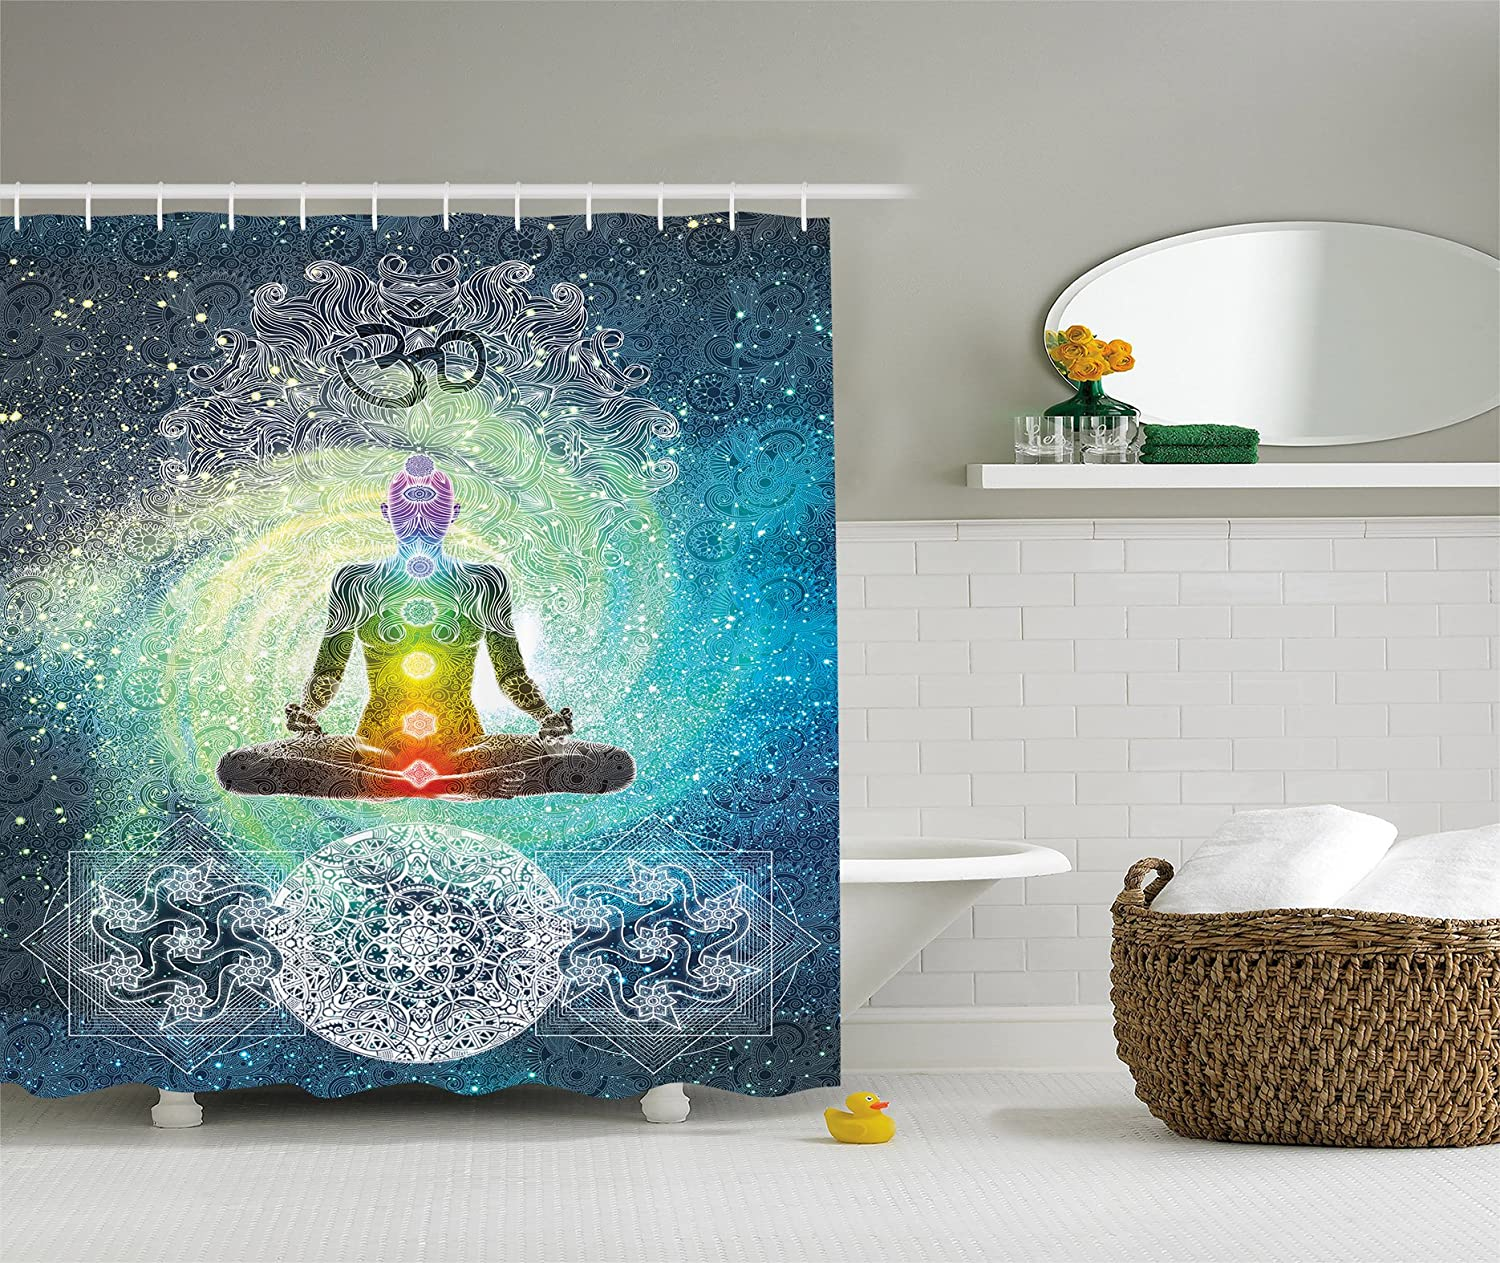 Amazon.com: Mandala Shower Curtain Bohemian Yoga Zen Decor By Ambesonne,  Mandala Design Zen Meditation Hippie Style With Chakra Art Print, Polyester  Fabric ...